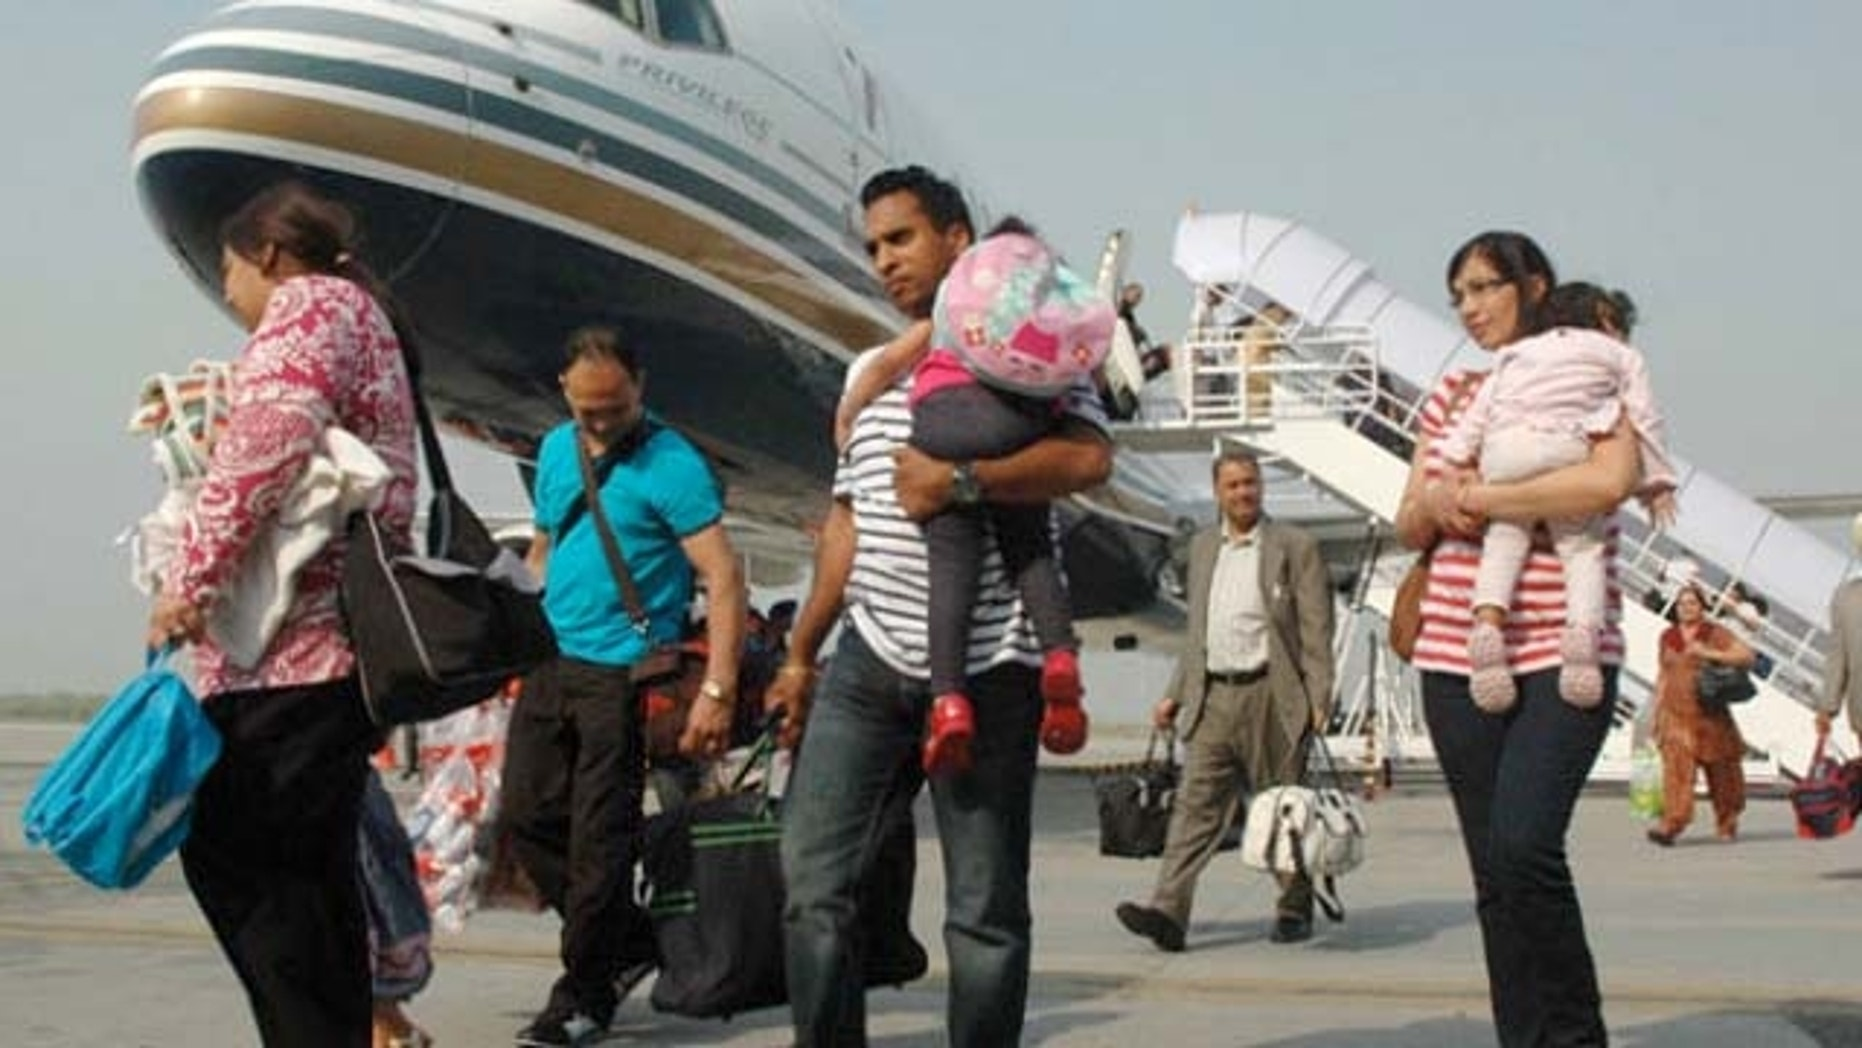 October 2, 2011: Indian passengers arrive from Austria at the Rajasansai International Airport on a Comtel Air flight in Amritsar.